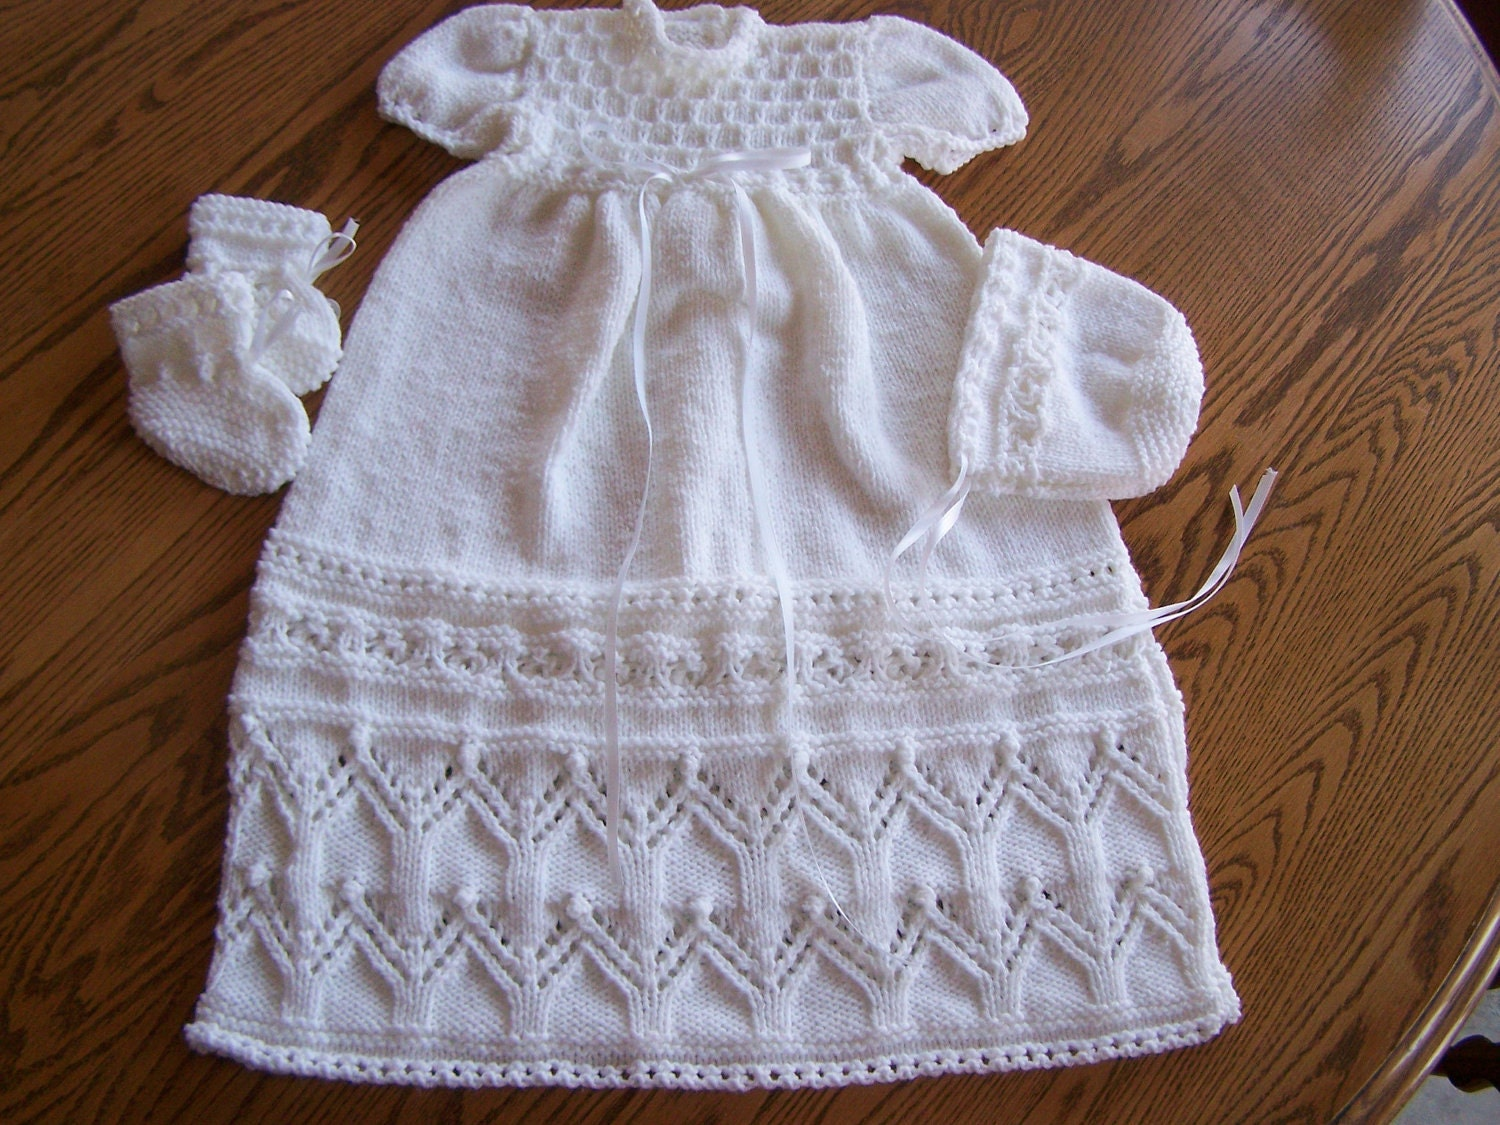 Christening Gown Knitting Patterns : New Hand Knit Tapestry Christening Gown Set 0-3M